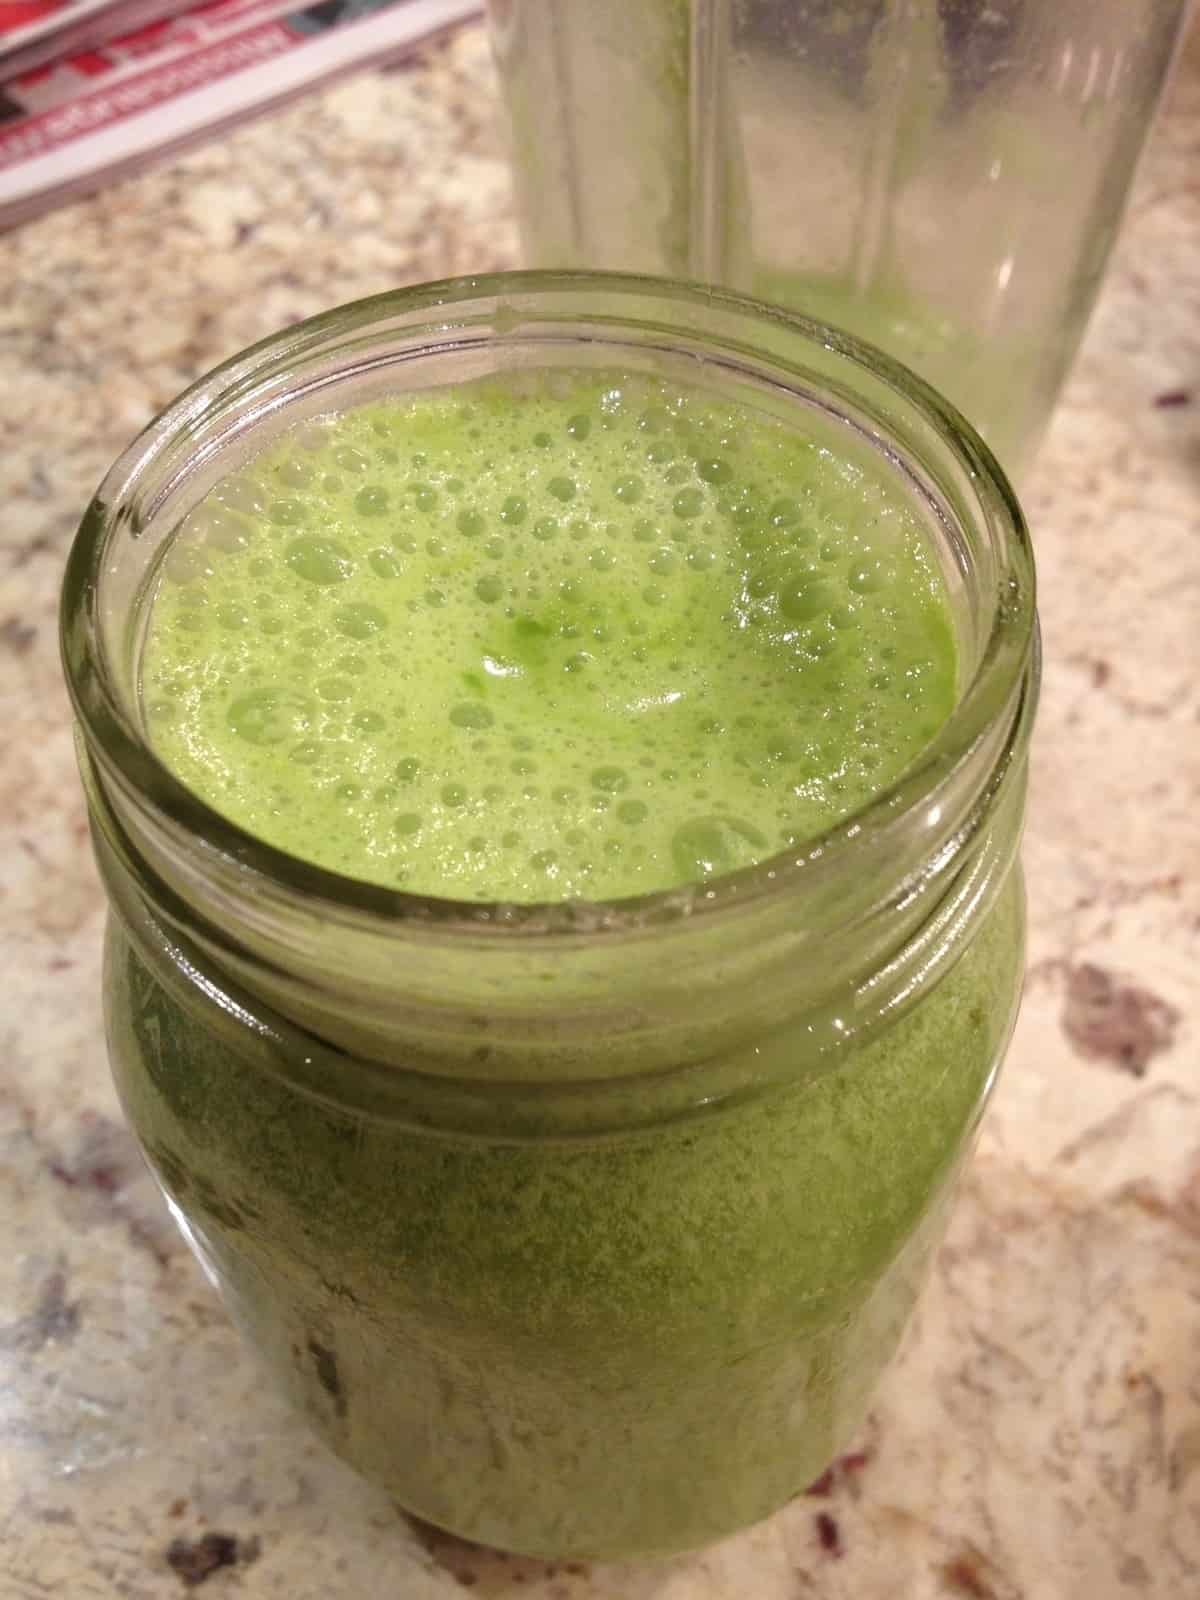 Day 30 -Detox Support Protein & Greens Smoothie